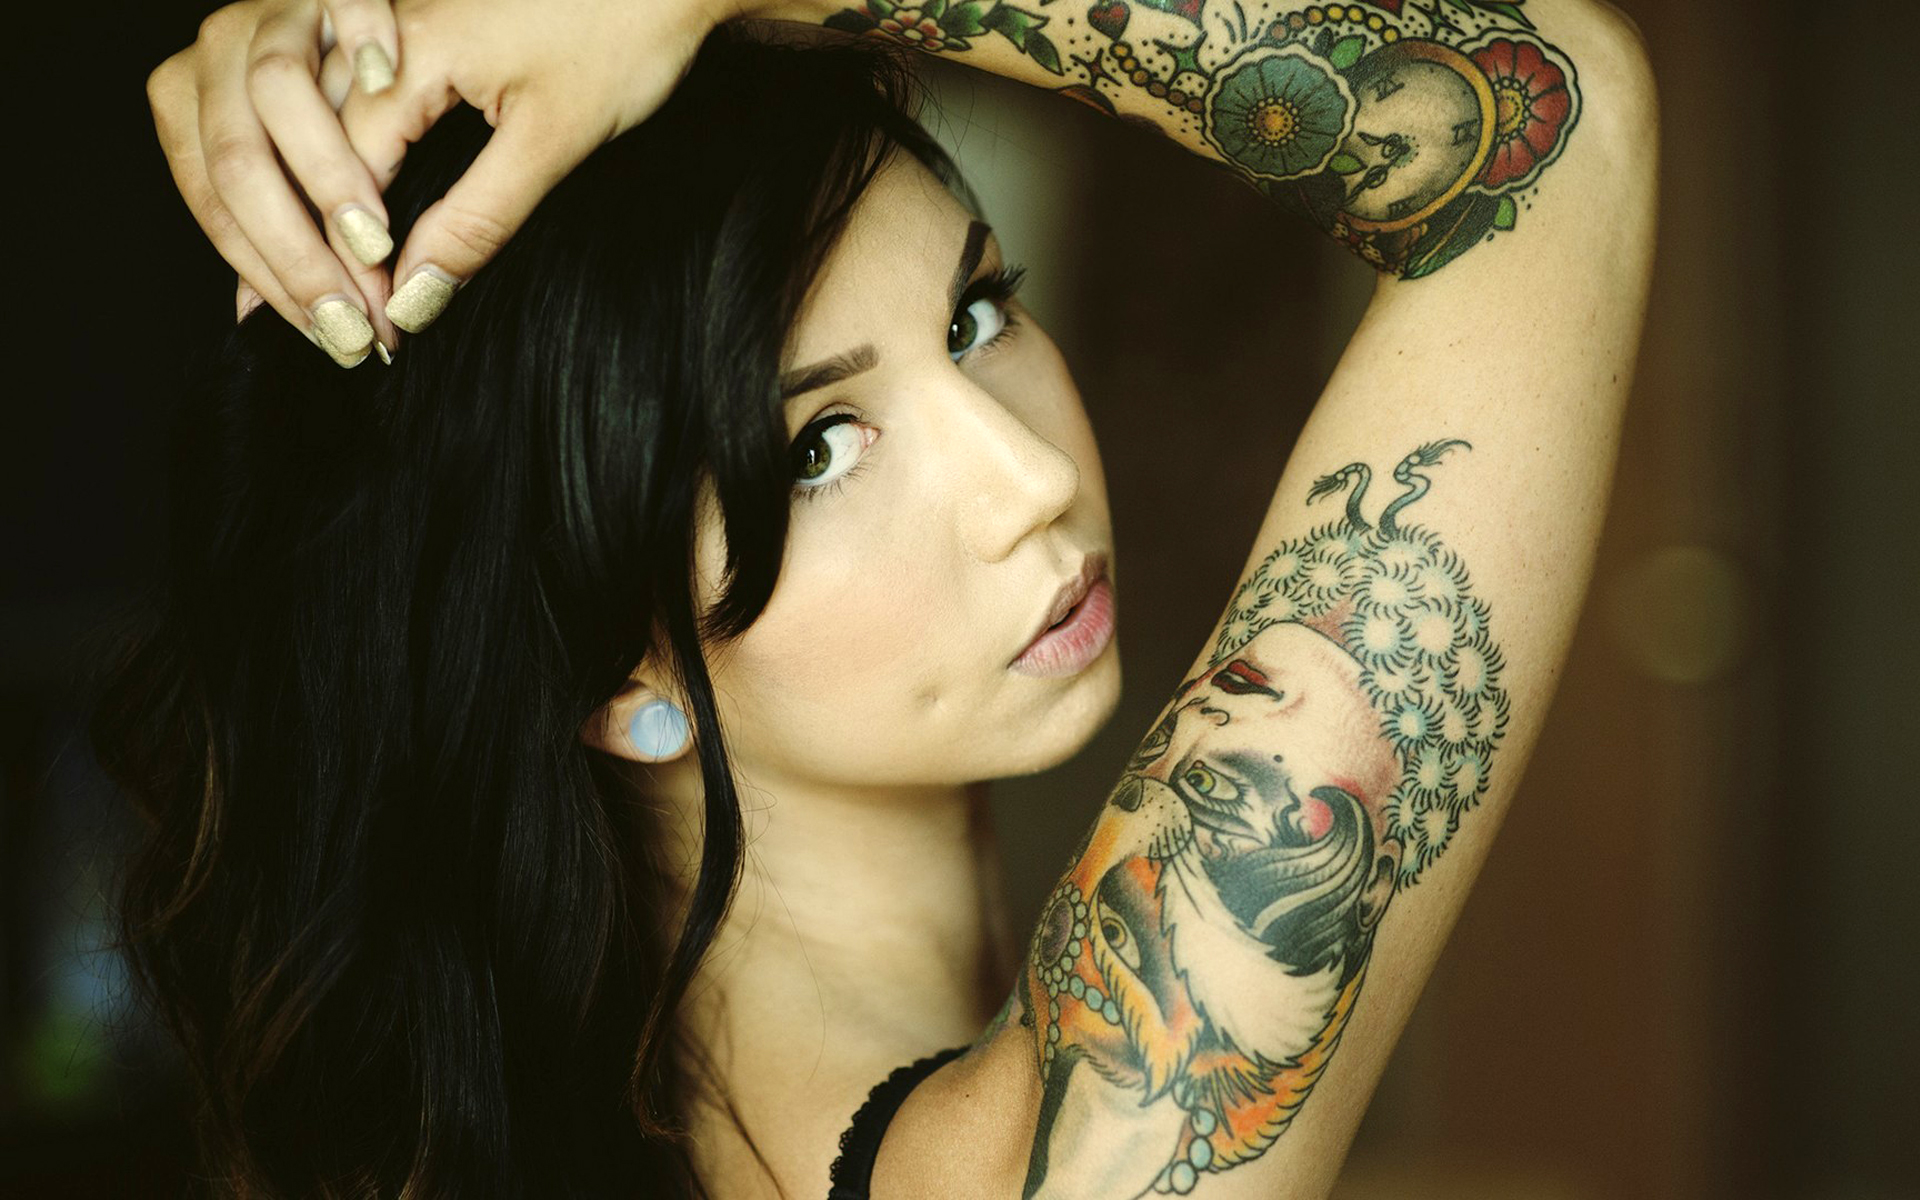 Girl Clock Tattoo HD Wallpapers 1920x1200